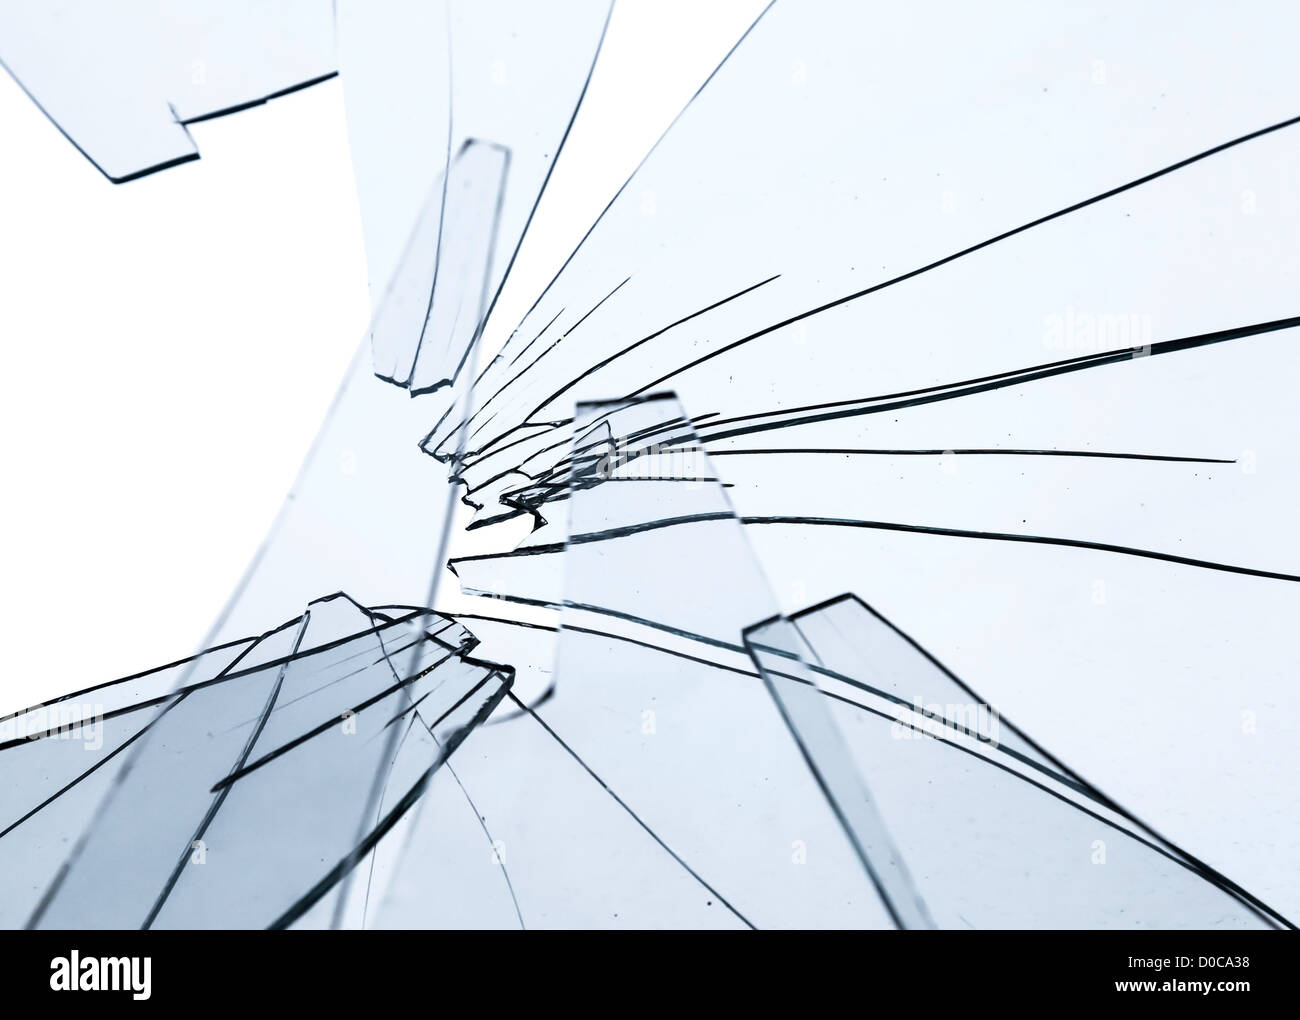 Broken glass fragments above white. Abstract background texture - Stock Image